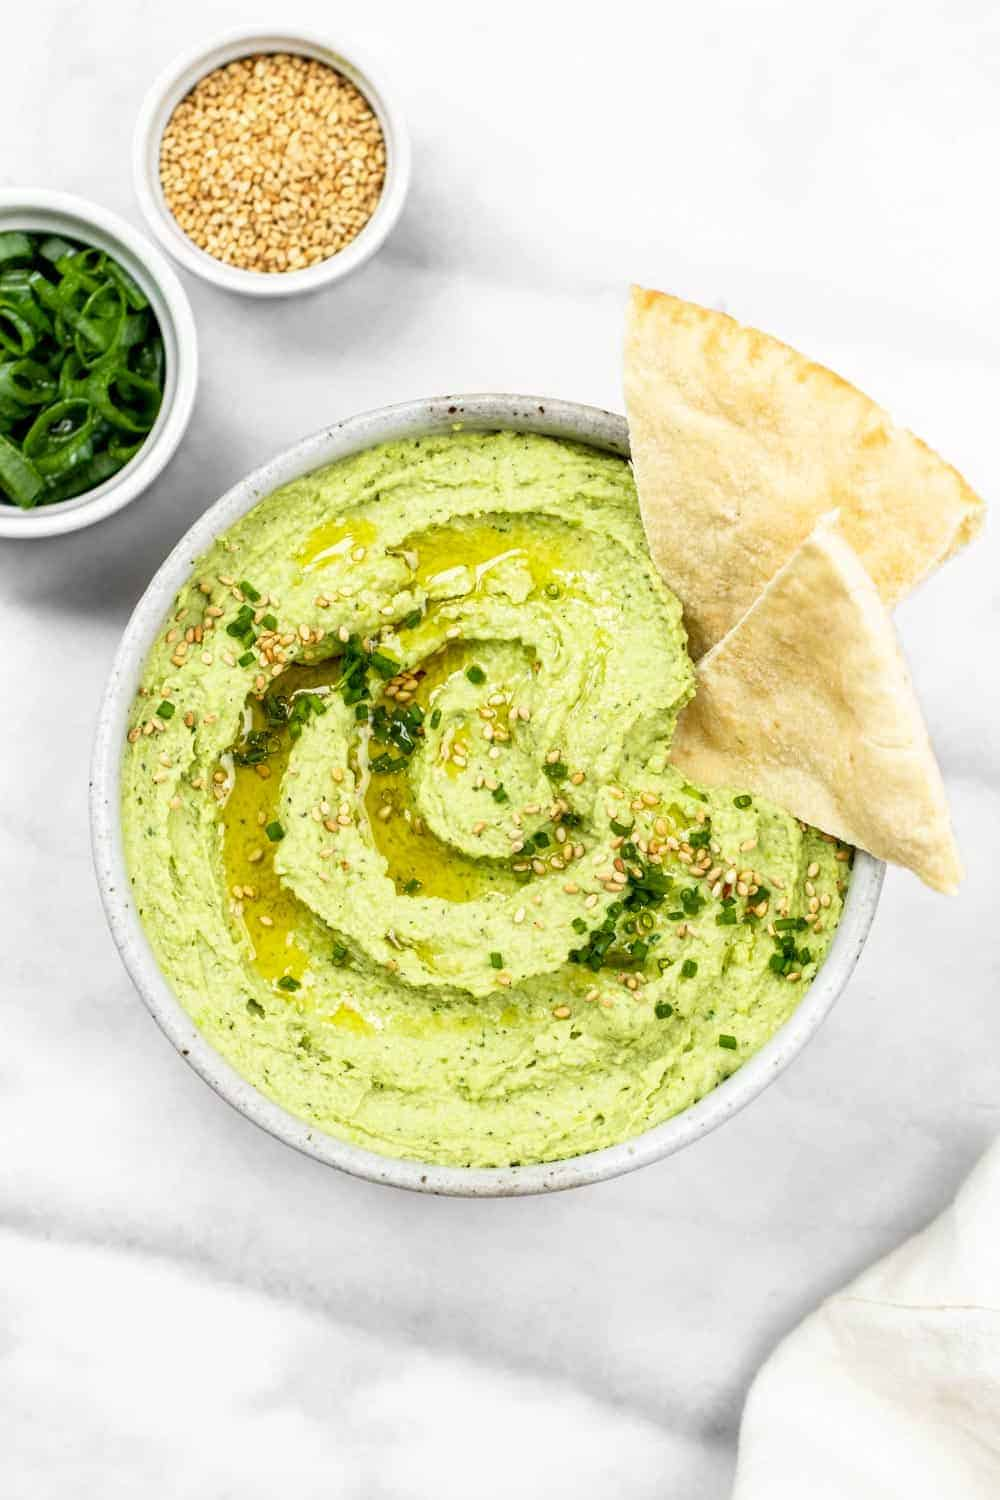 Edamame hummus in a small bowl with pita bread on the side.